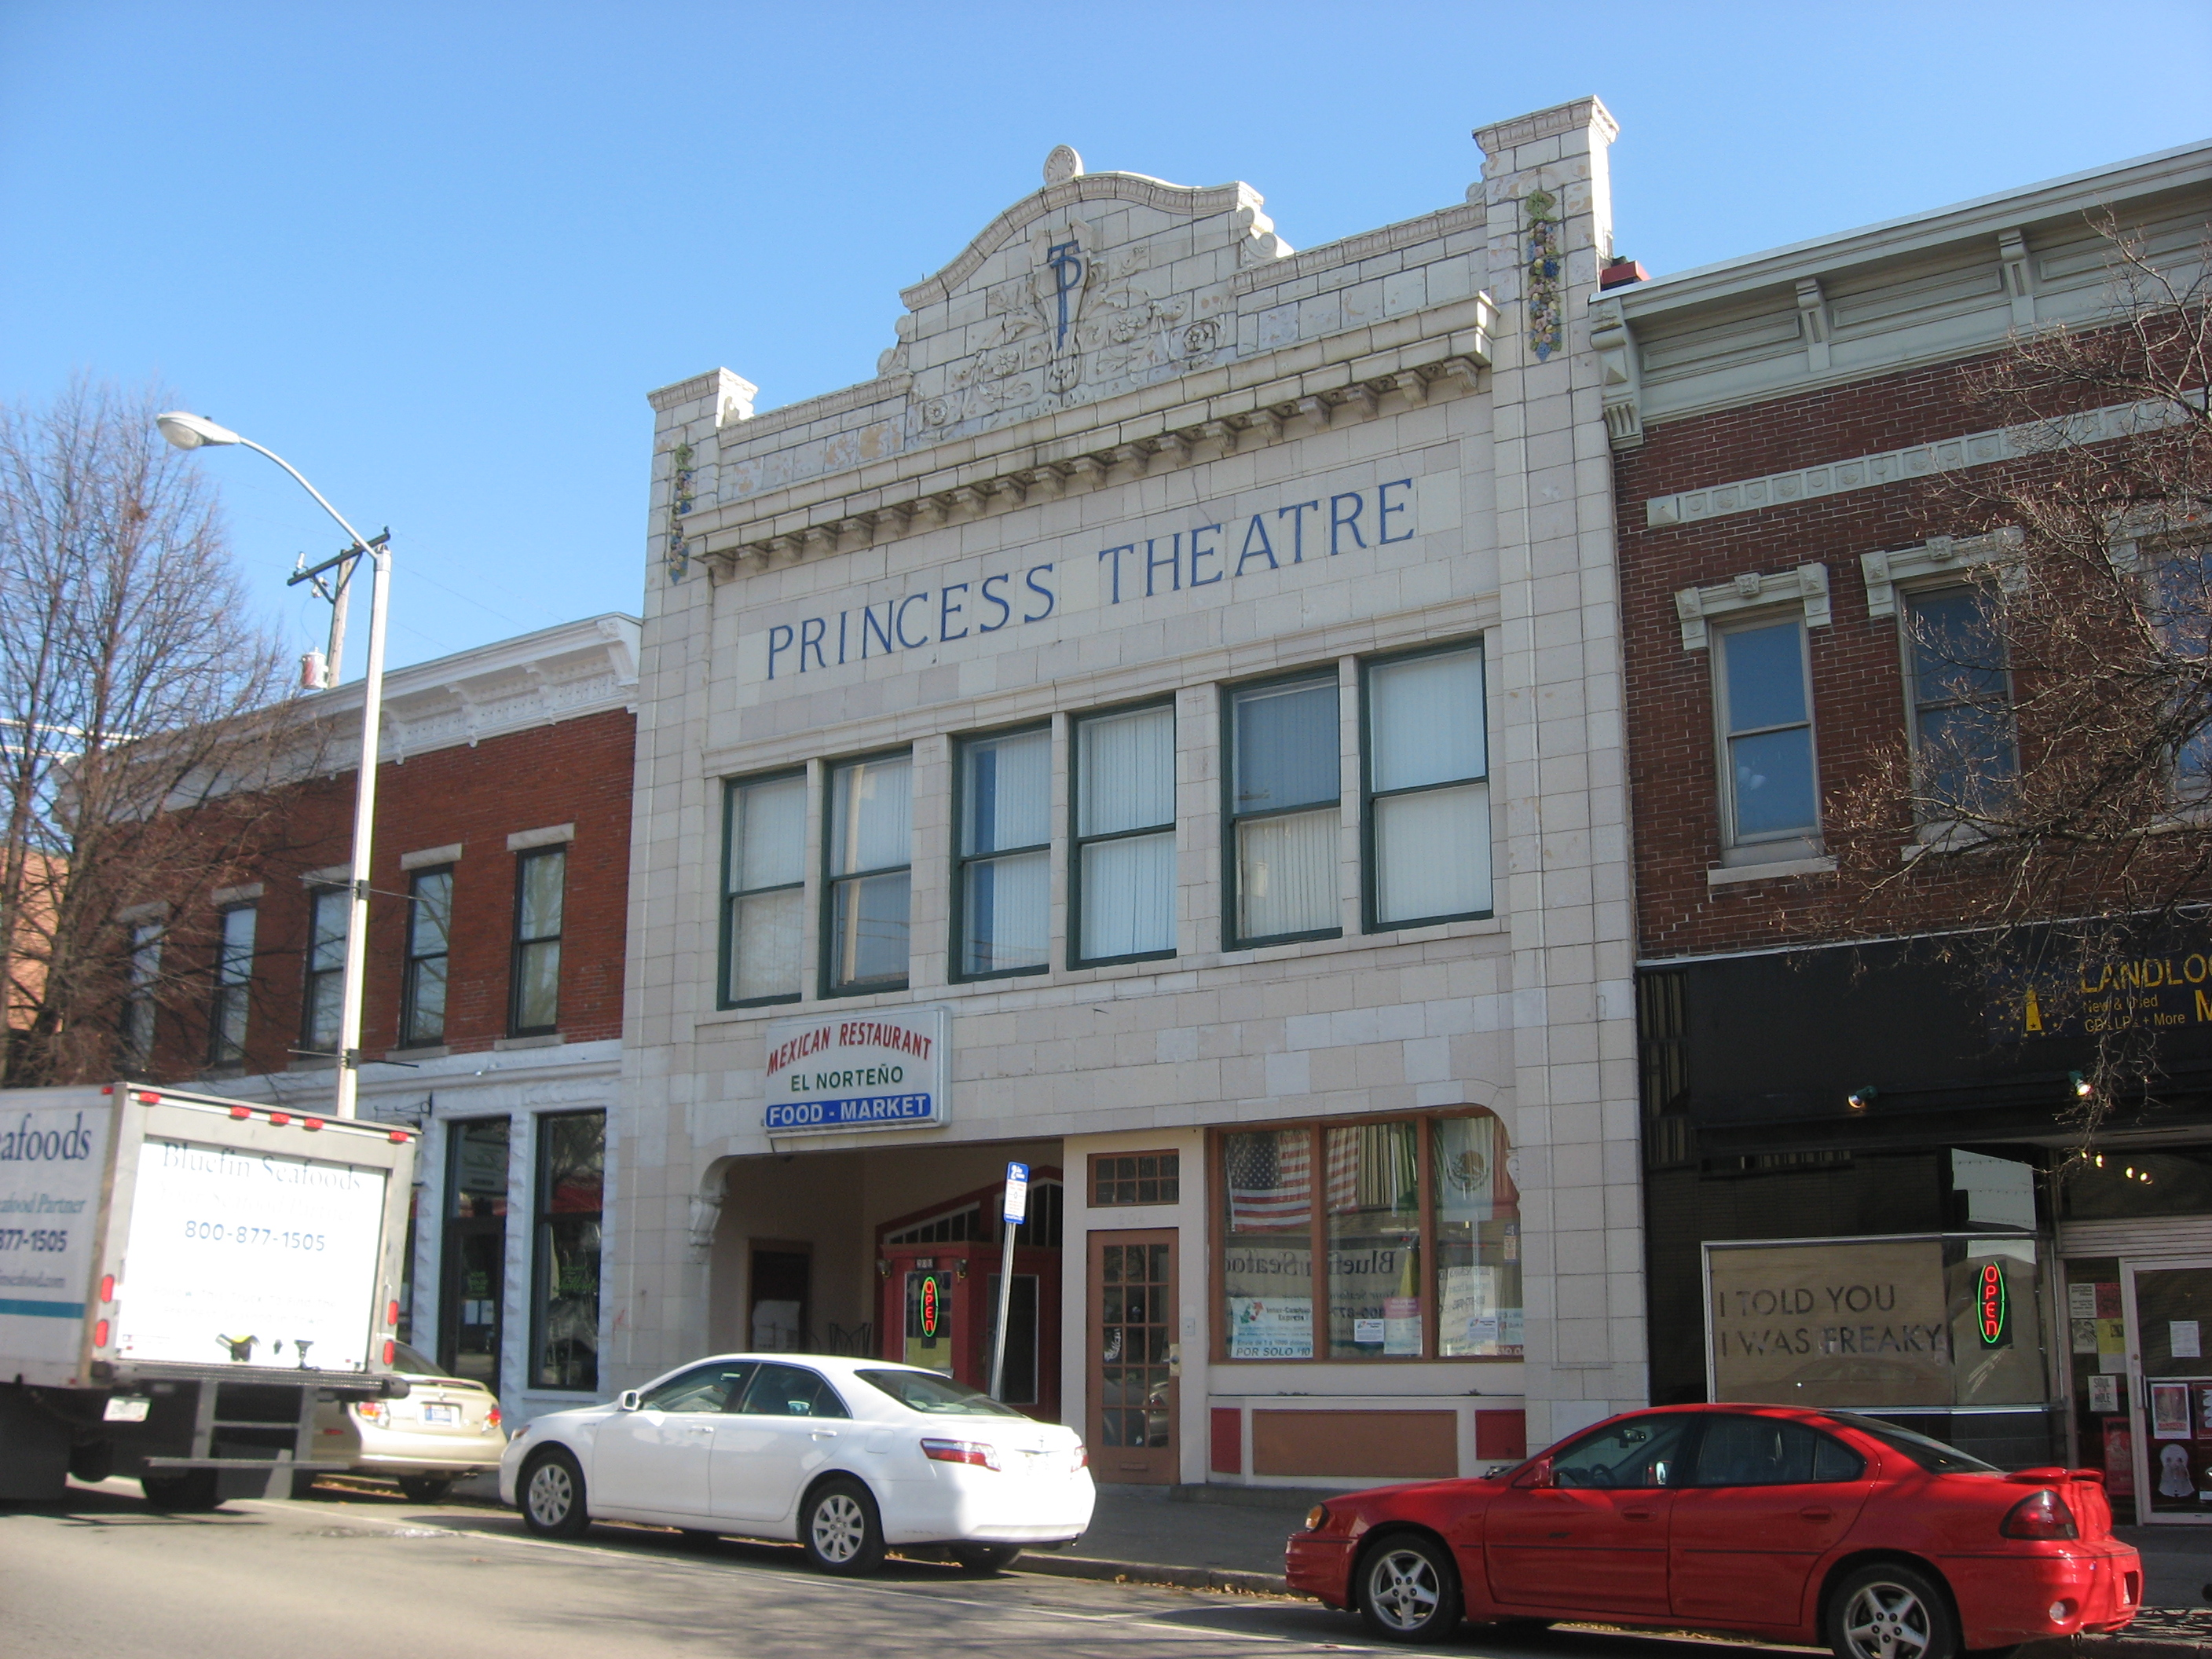 After the collapse of the auditorium, most of what truly remains of the Princess Theatre is represented by it's glazed white terracotta facade. The building was designed by firm Nichols & Nichols.